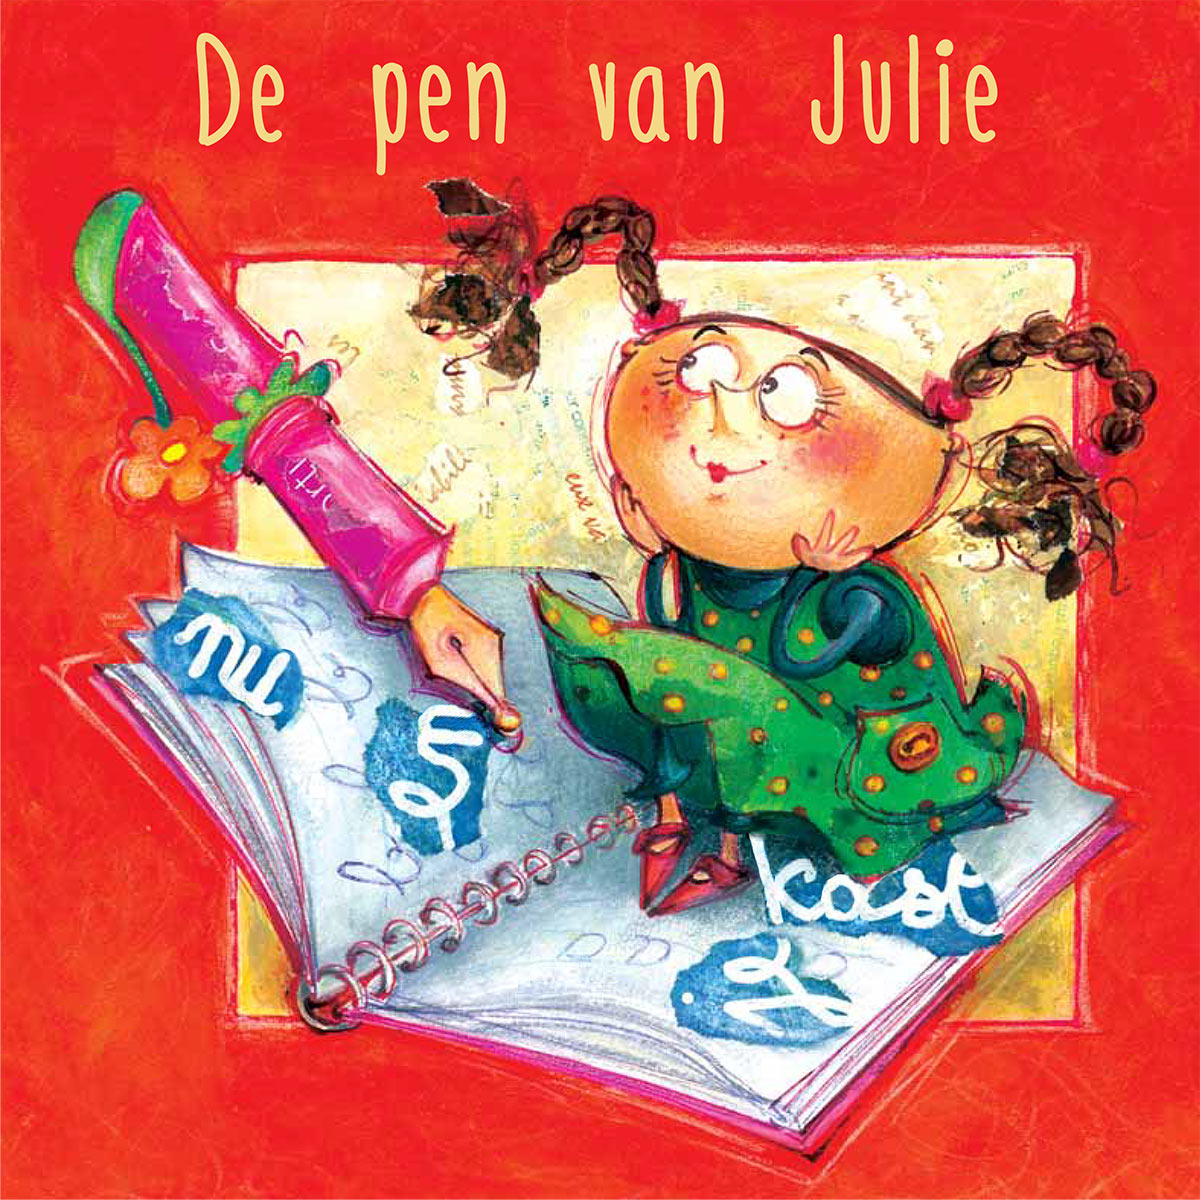 De pen van Julie